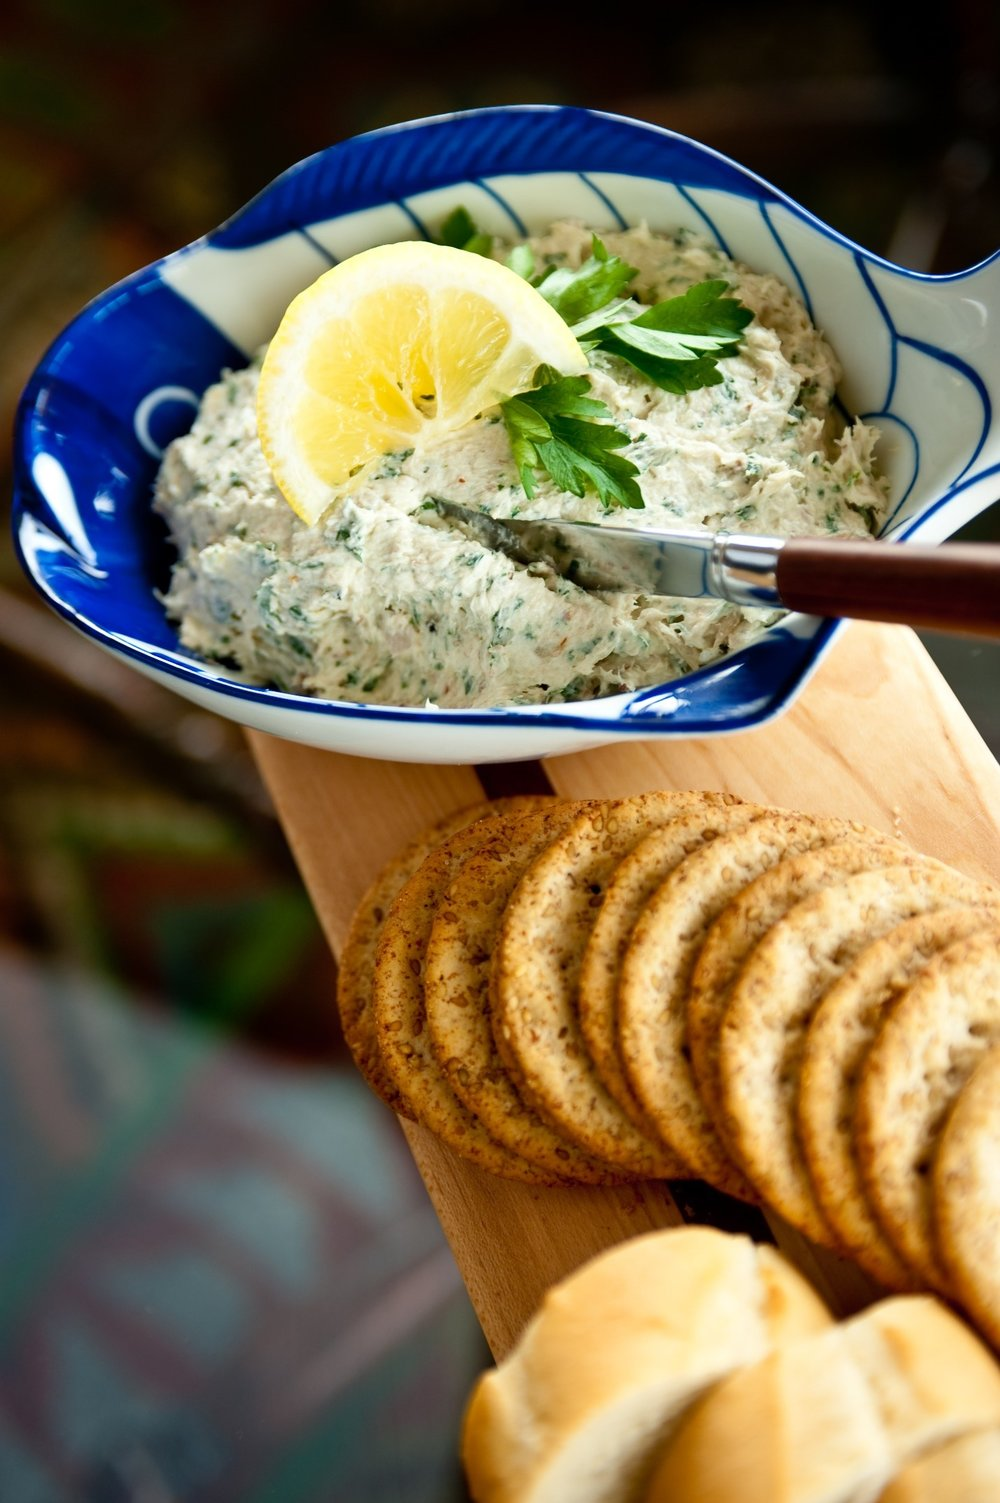 SMOKED BLUEFISH PÂTÉ. - ½ pound smoked bluefish (peppered, if available)1 package cream cheese (8 ounces), at room temperature¾ cup chopped parsley¼ cup chopped red onions1 – 2 tablespoons fresh lemon juiceSalt and freshly ground pepperCarefully remove the skin, bones, and any dark flesh from the fish and flake it into pieces. In a medium bowl beat the cream cheese to soften. Add the bluefish, parsley, onions, and lemon juice and beat together. Season with salt and pepper to taste. Spoon into a serving dish and refrigerate until ready to serve.Serve with crackers or thinly sliced and toasted baguettes.